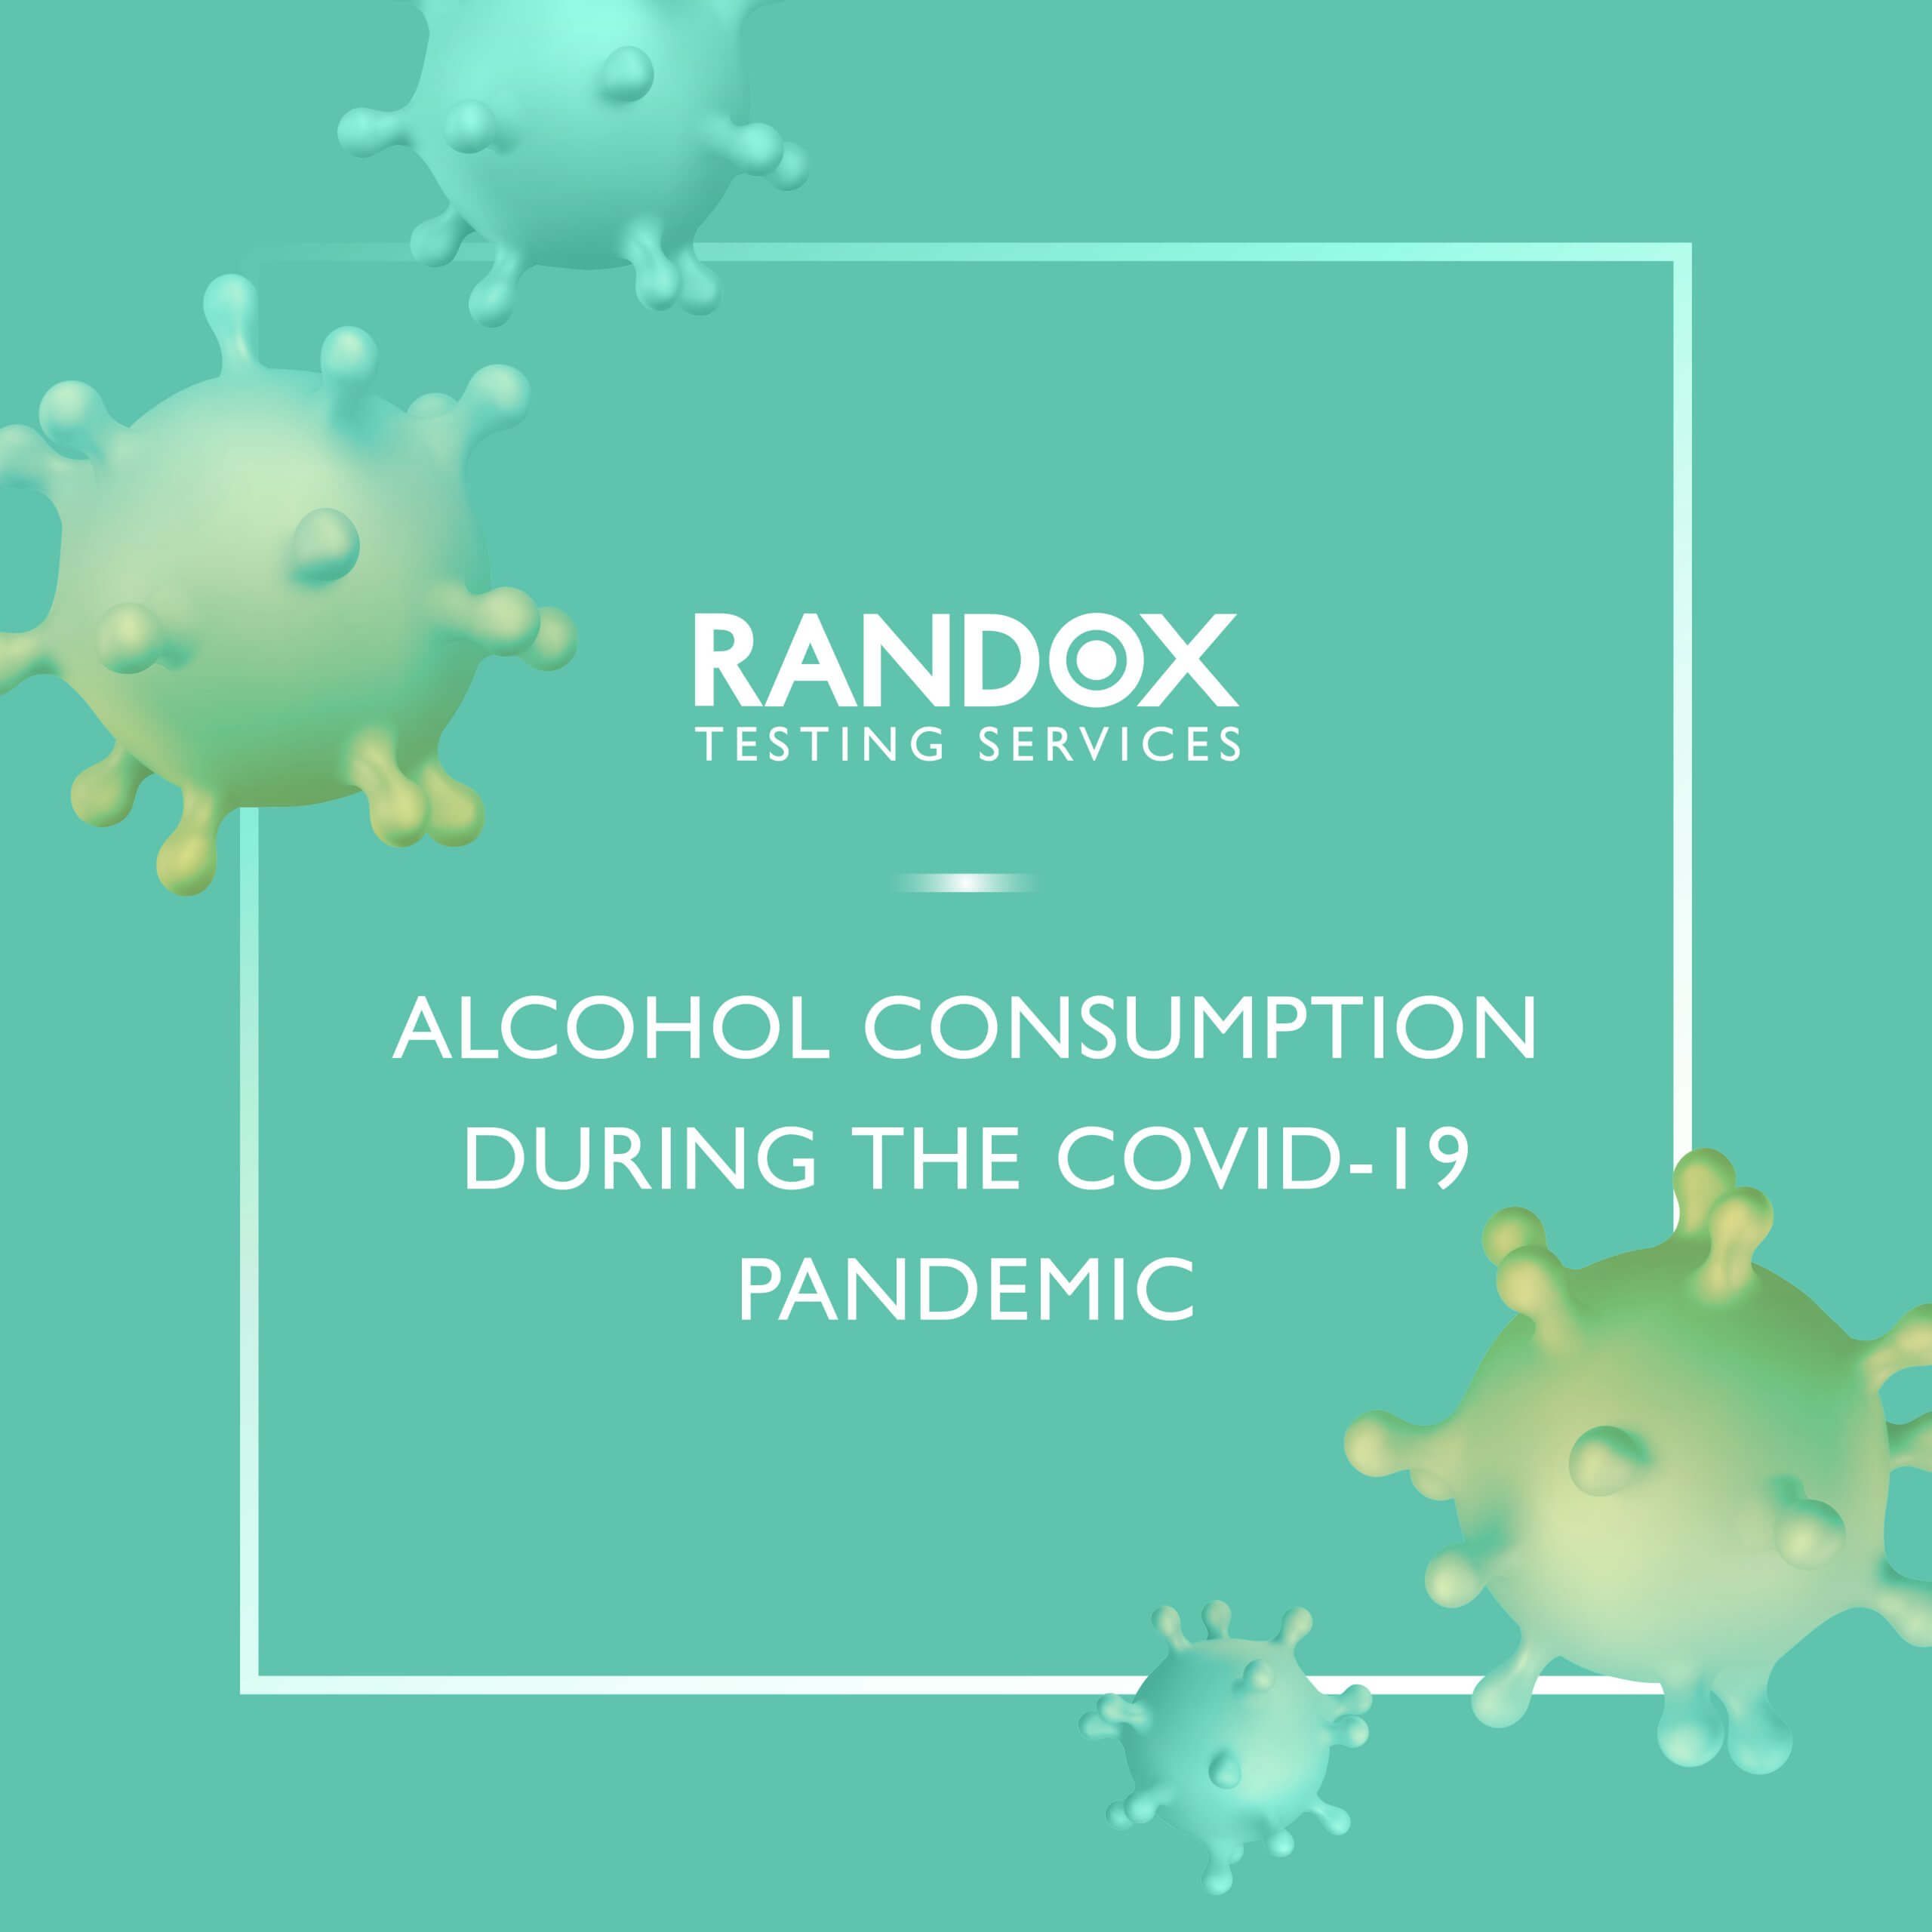 Alcohol consumption during pandemic